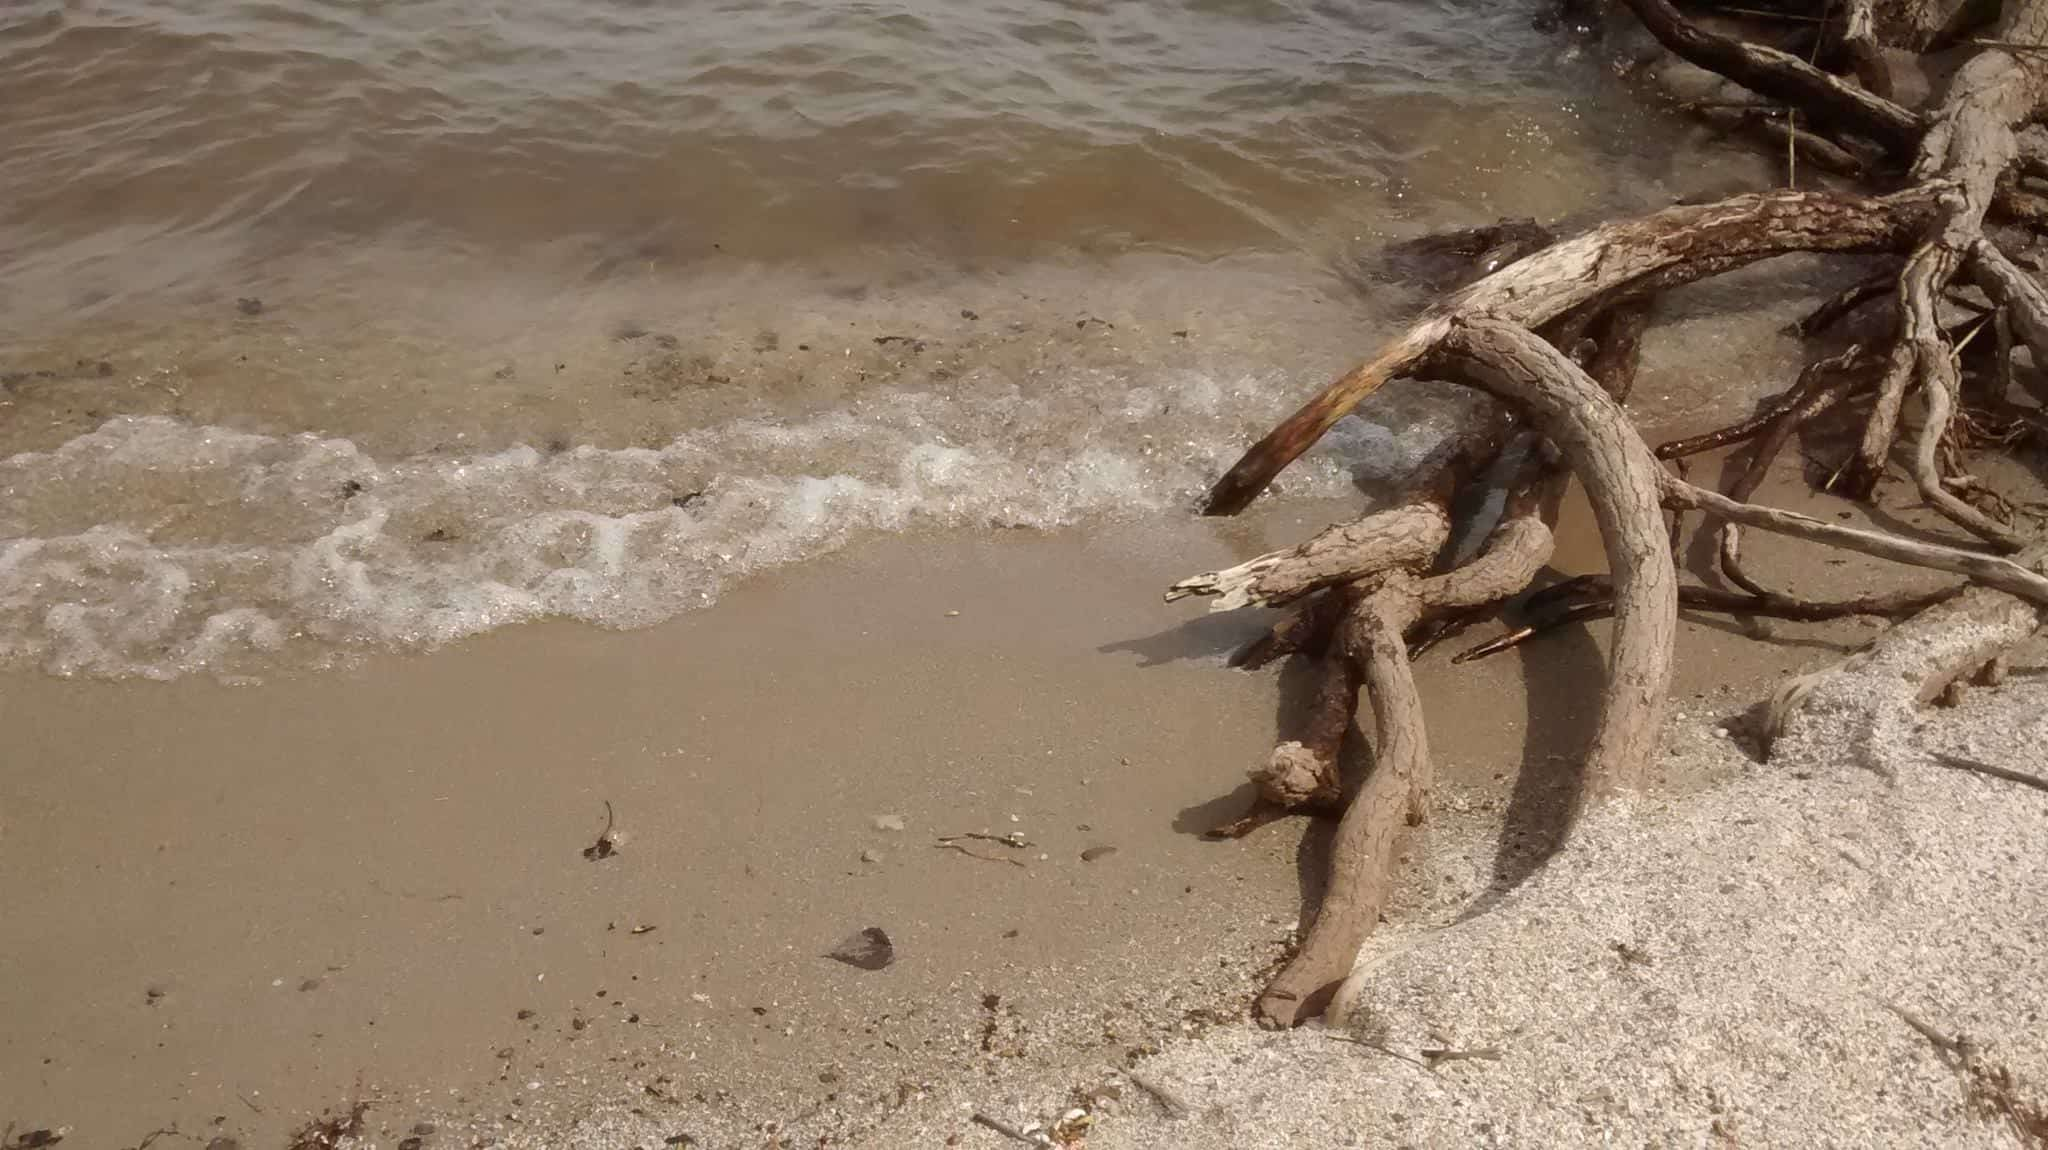 A small wave washes up on a sandy beach, with some driftwood nearby.